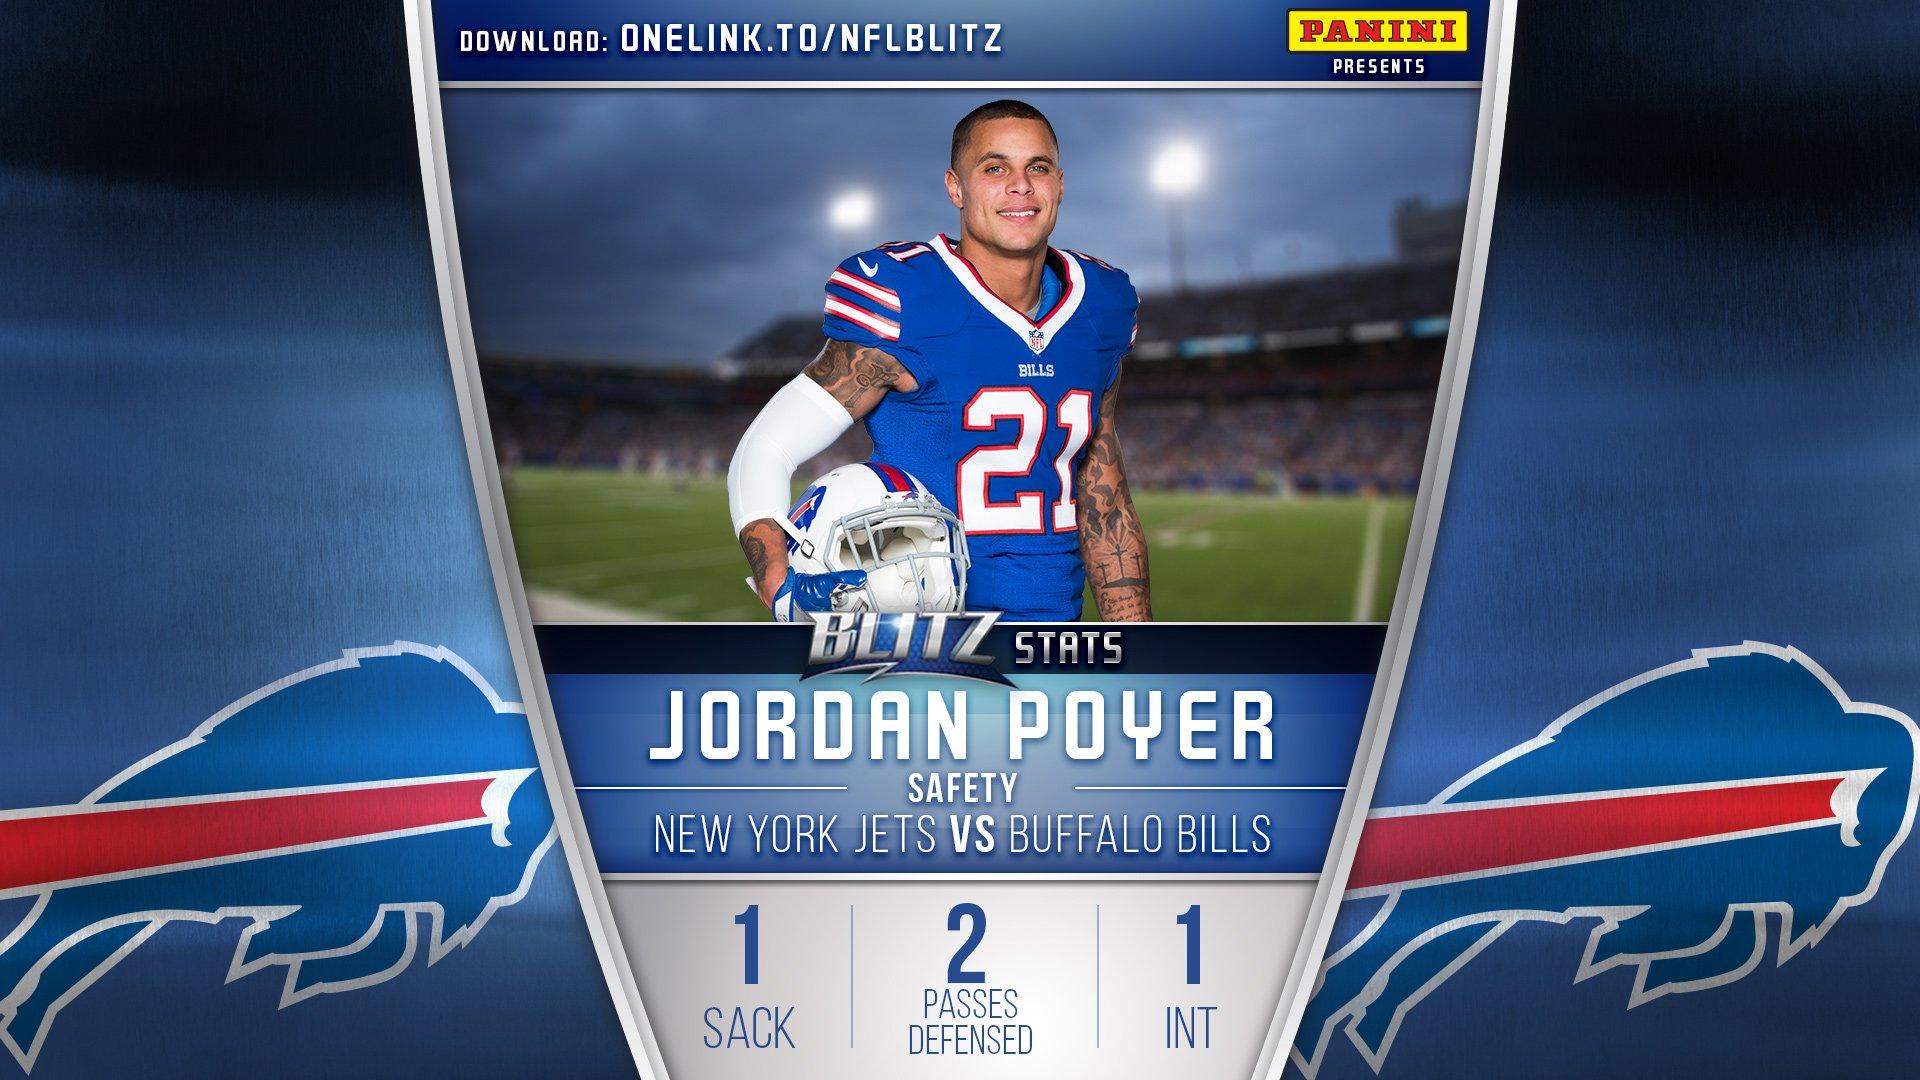 We'd say @J_poyer21's first game as a Bill went well. �� #GoBills https://t.co/UxgHAxm9m6